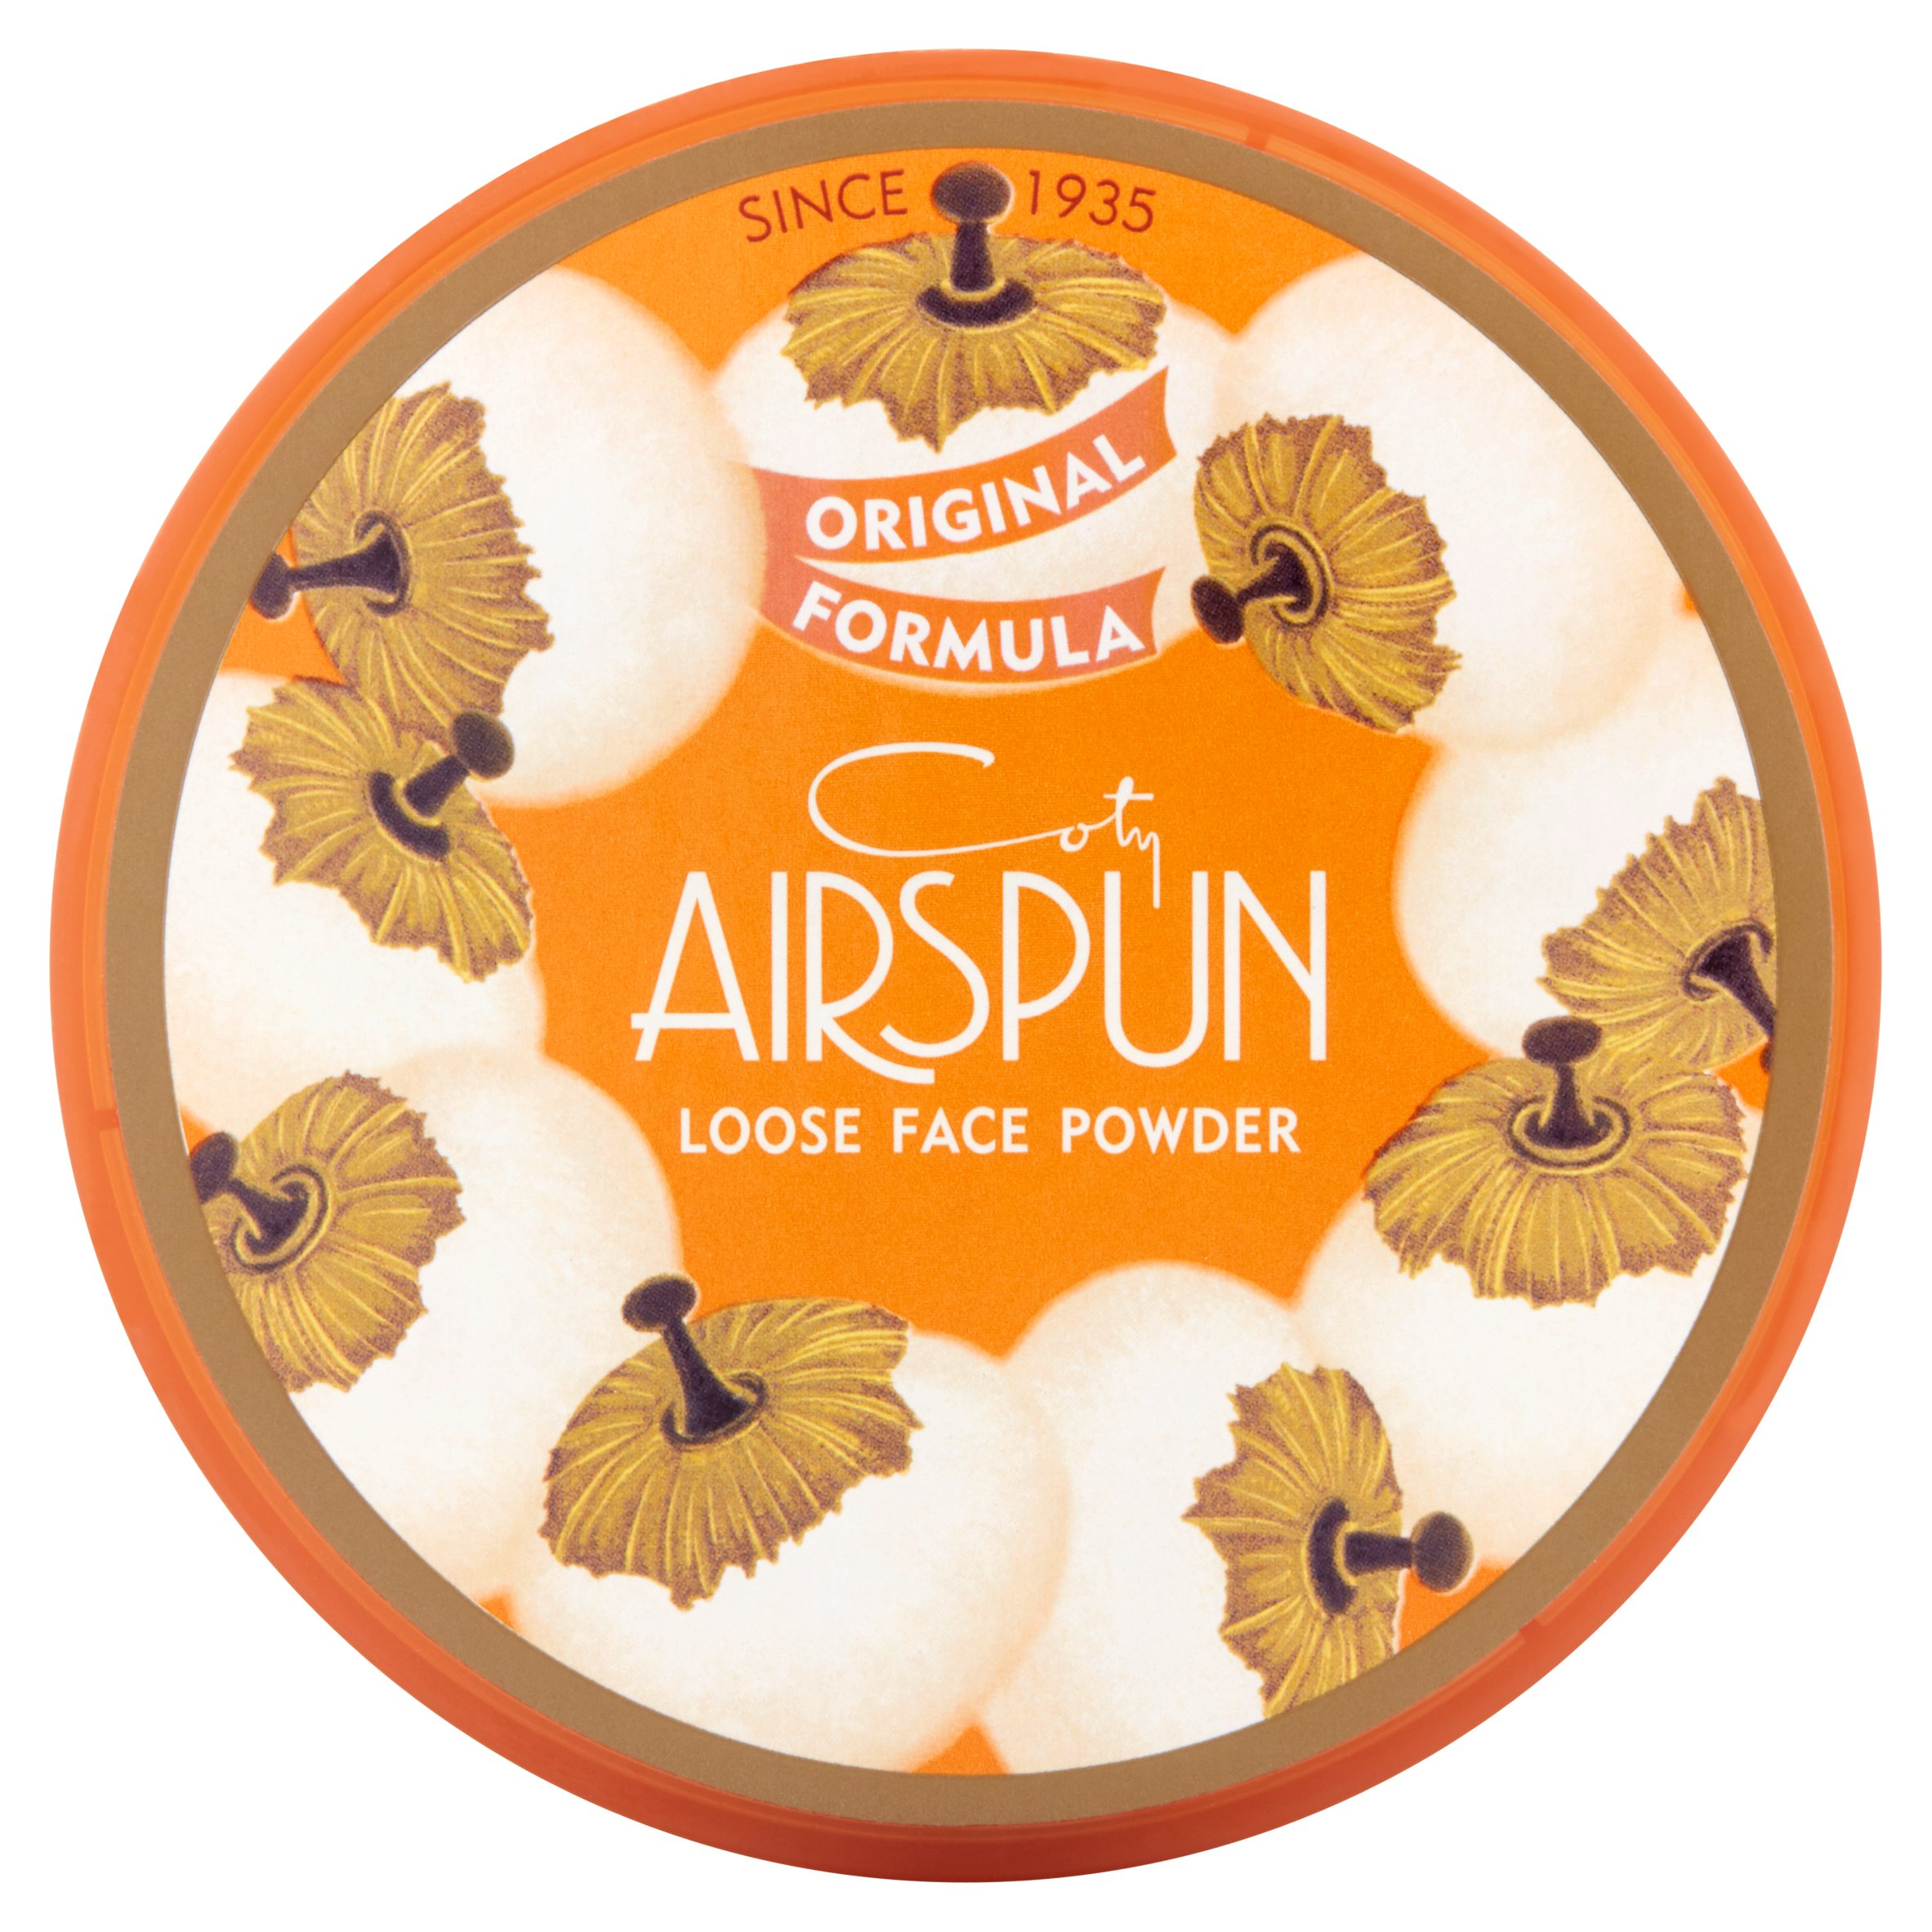 Coty Airspun Translucent Extra Coverage Loose Face Powder, 2.3 oz